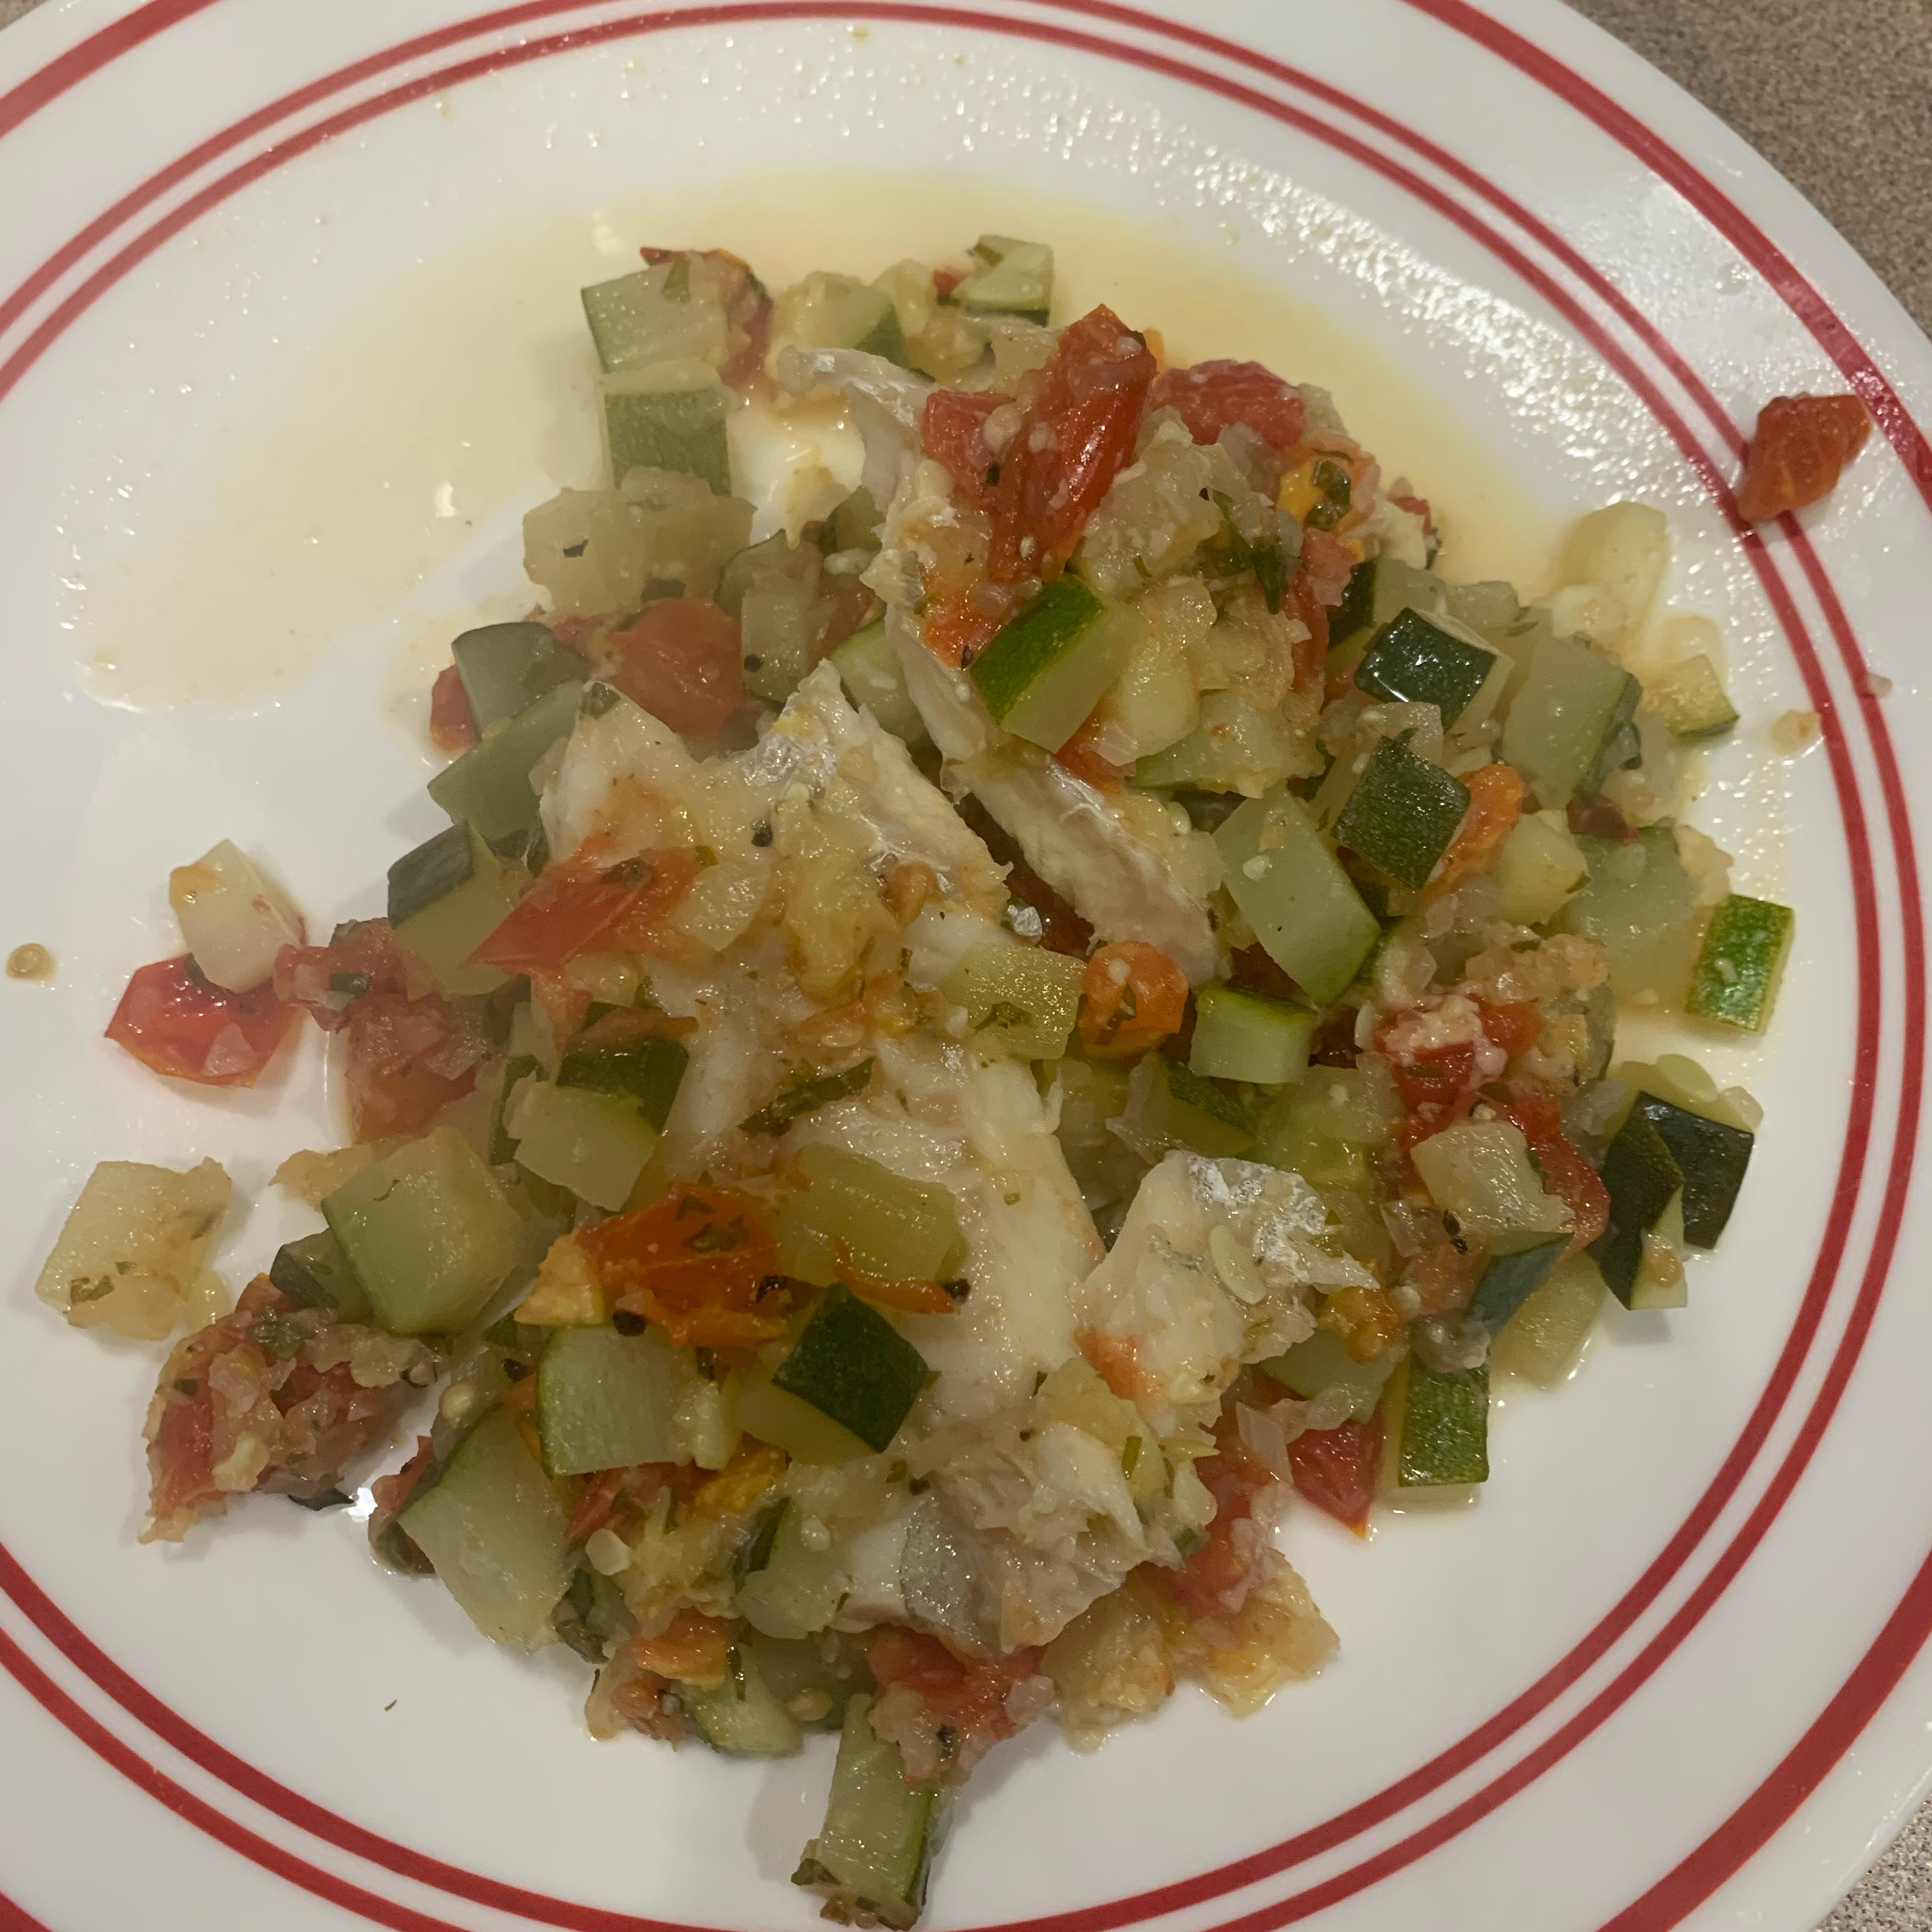 """""""An Italian-style vegetable (zucchini, tomatoes, onions, garlic) and feta cheese topping is the perfect enhancement to delicious baked halibut,"""" says dakota kelly. Jeremy recommends adding a nice pinch of crushed red pepper flakes and a splash of lemon juice at the end."""